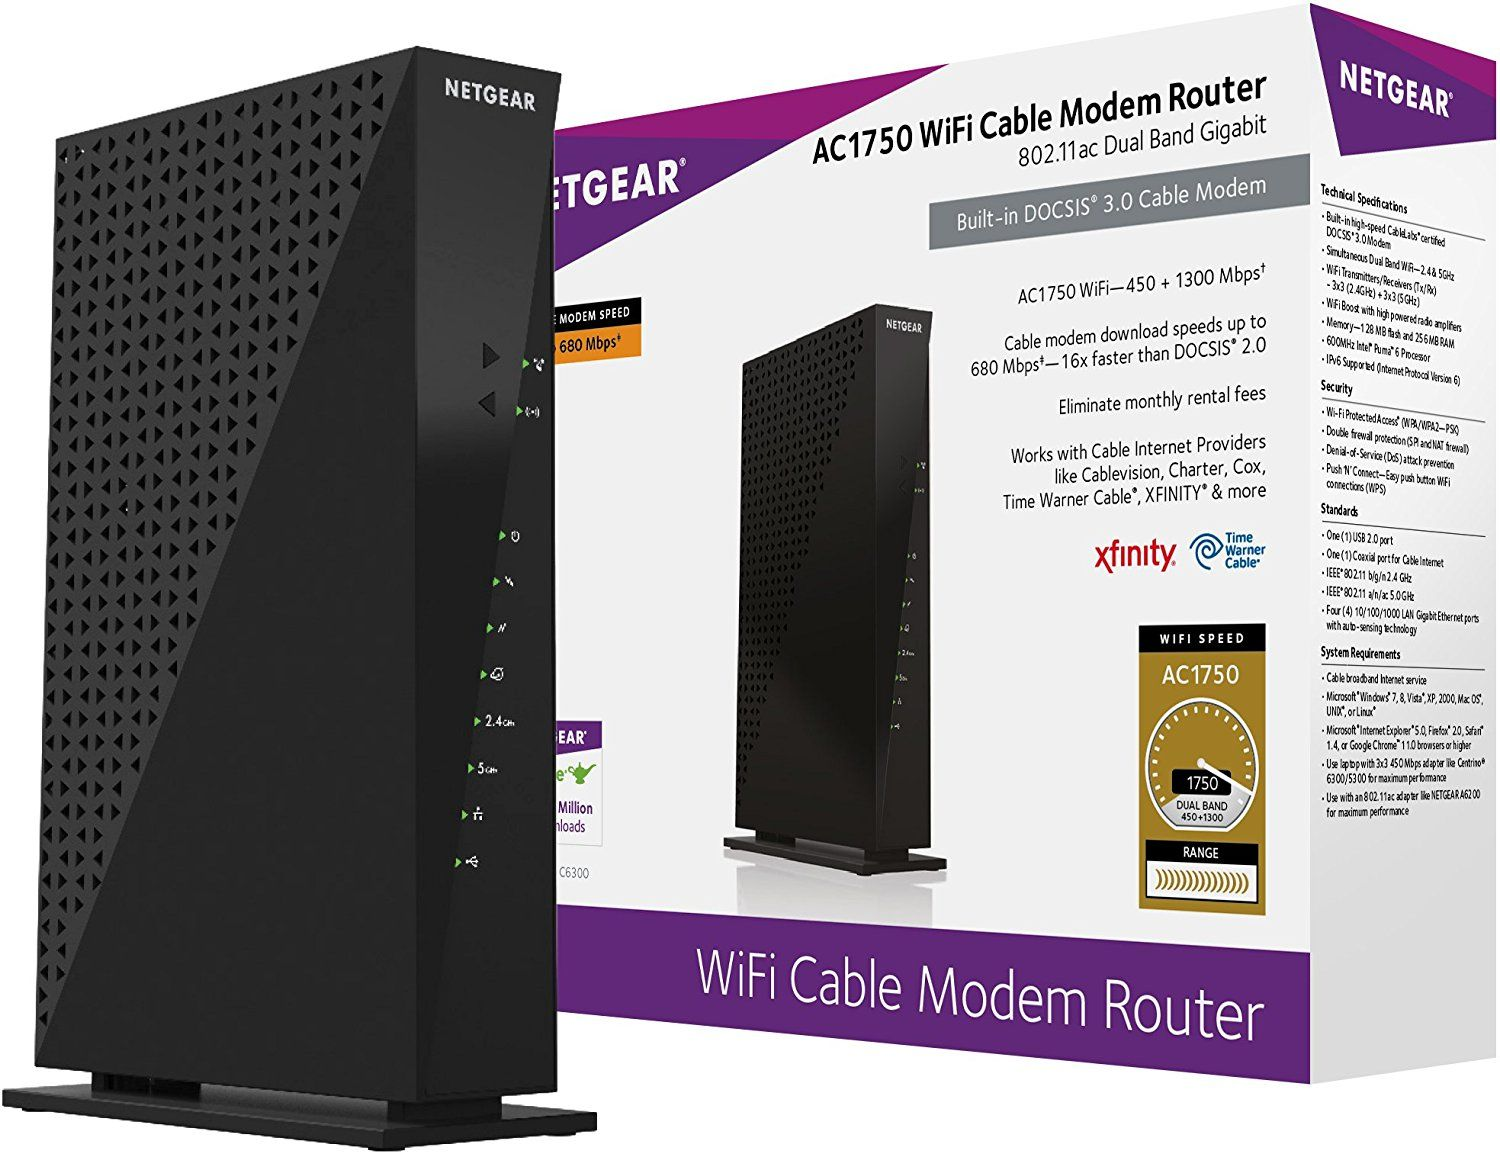 Comcast Cable Modem Router Network Diagram Comcast Cable Modem